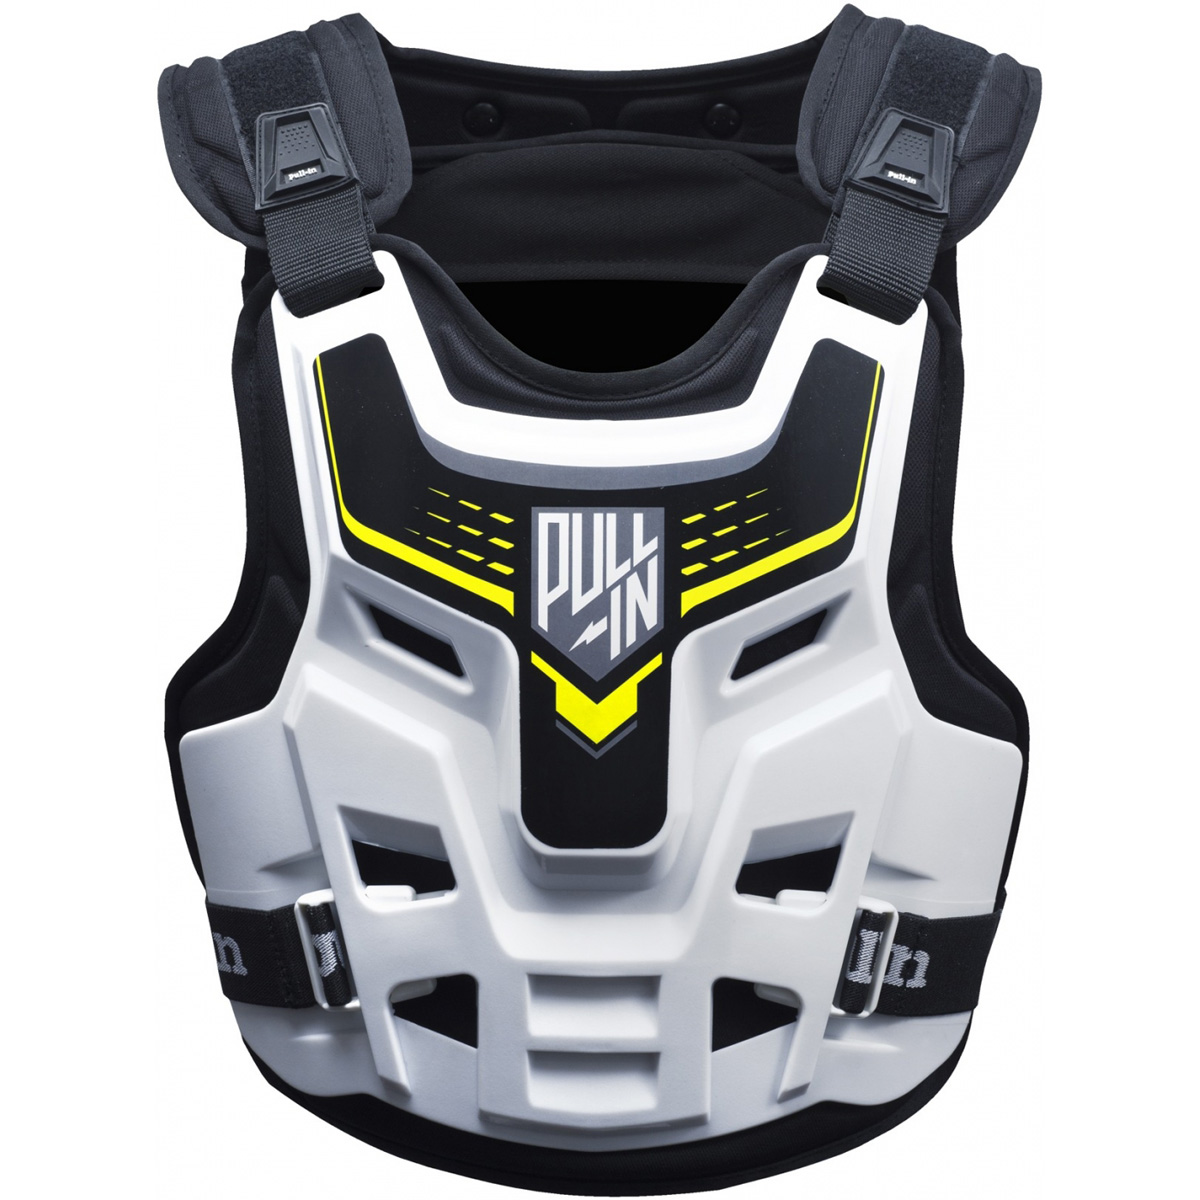 175-1750010 Pull-In Body Protector White Brustpanzer Pare-Pierres de Protection Harnas Bescherming